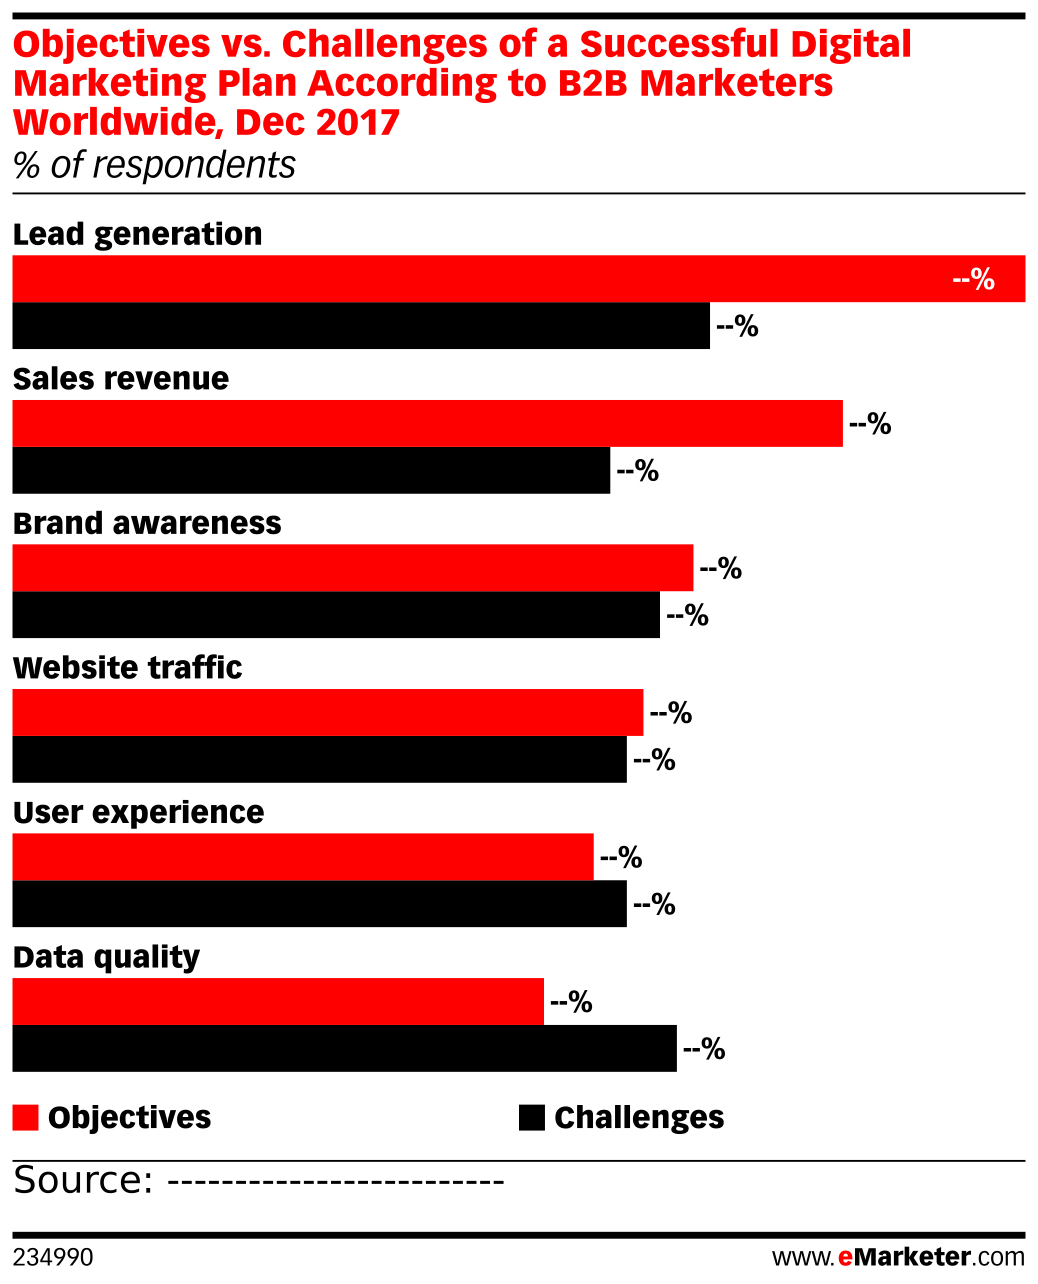 Objectives vs. Challenges of a Successful Digital Marketing Plan According to B2B Marketers Worldwide, Dec 2017 (% of respondents)